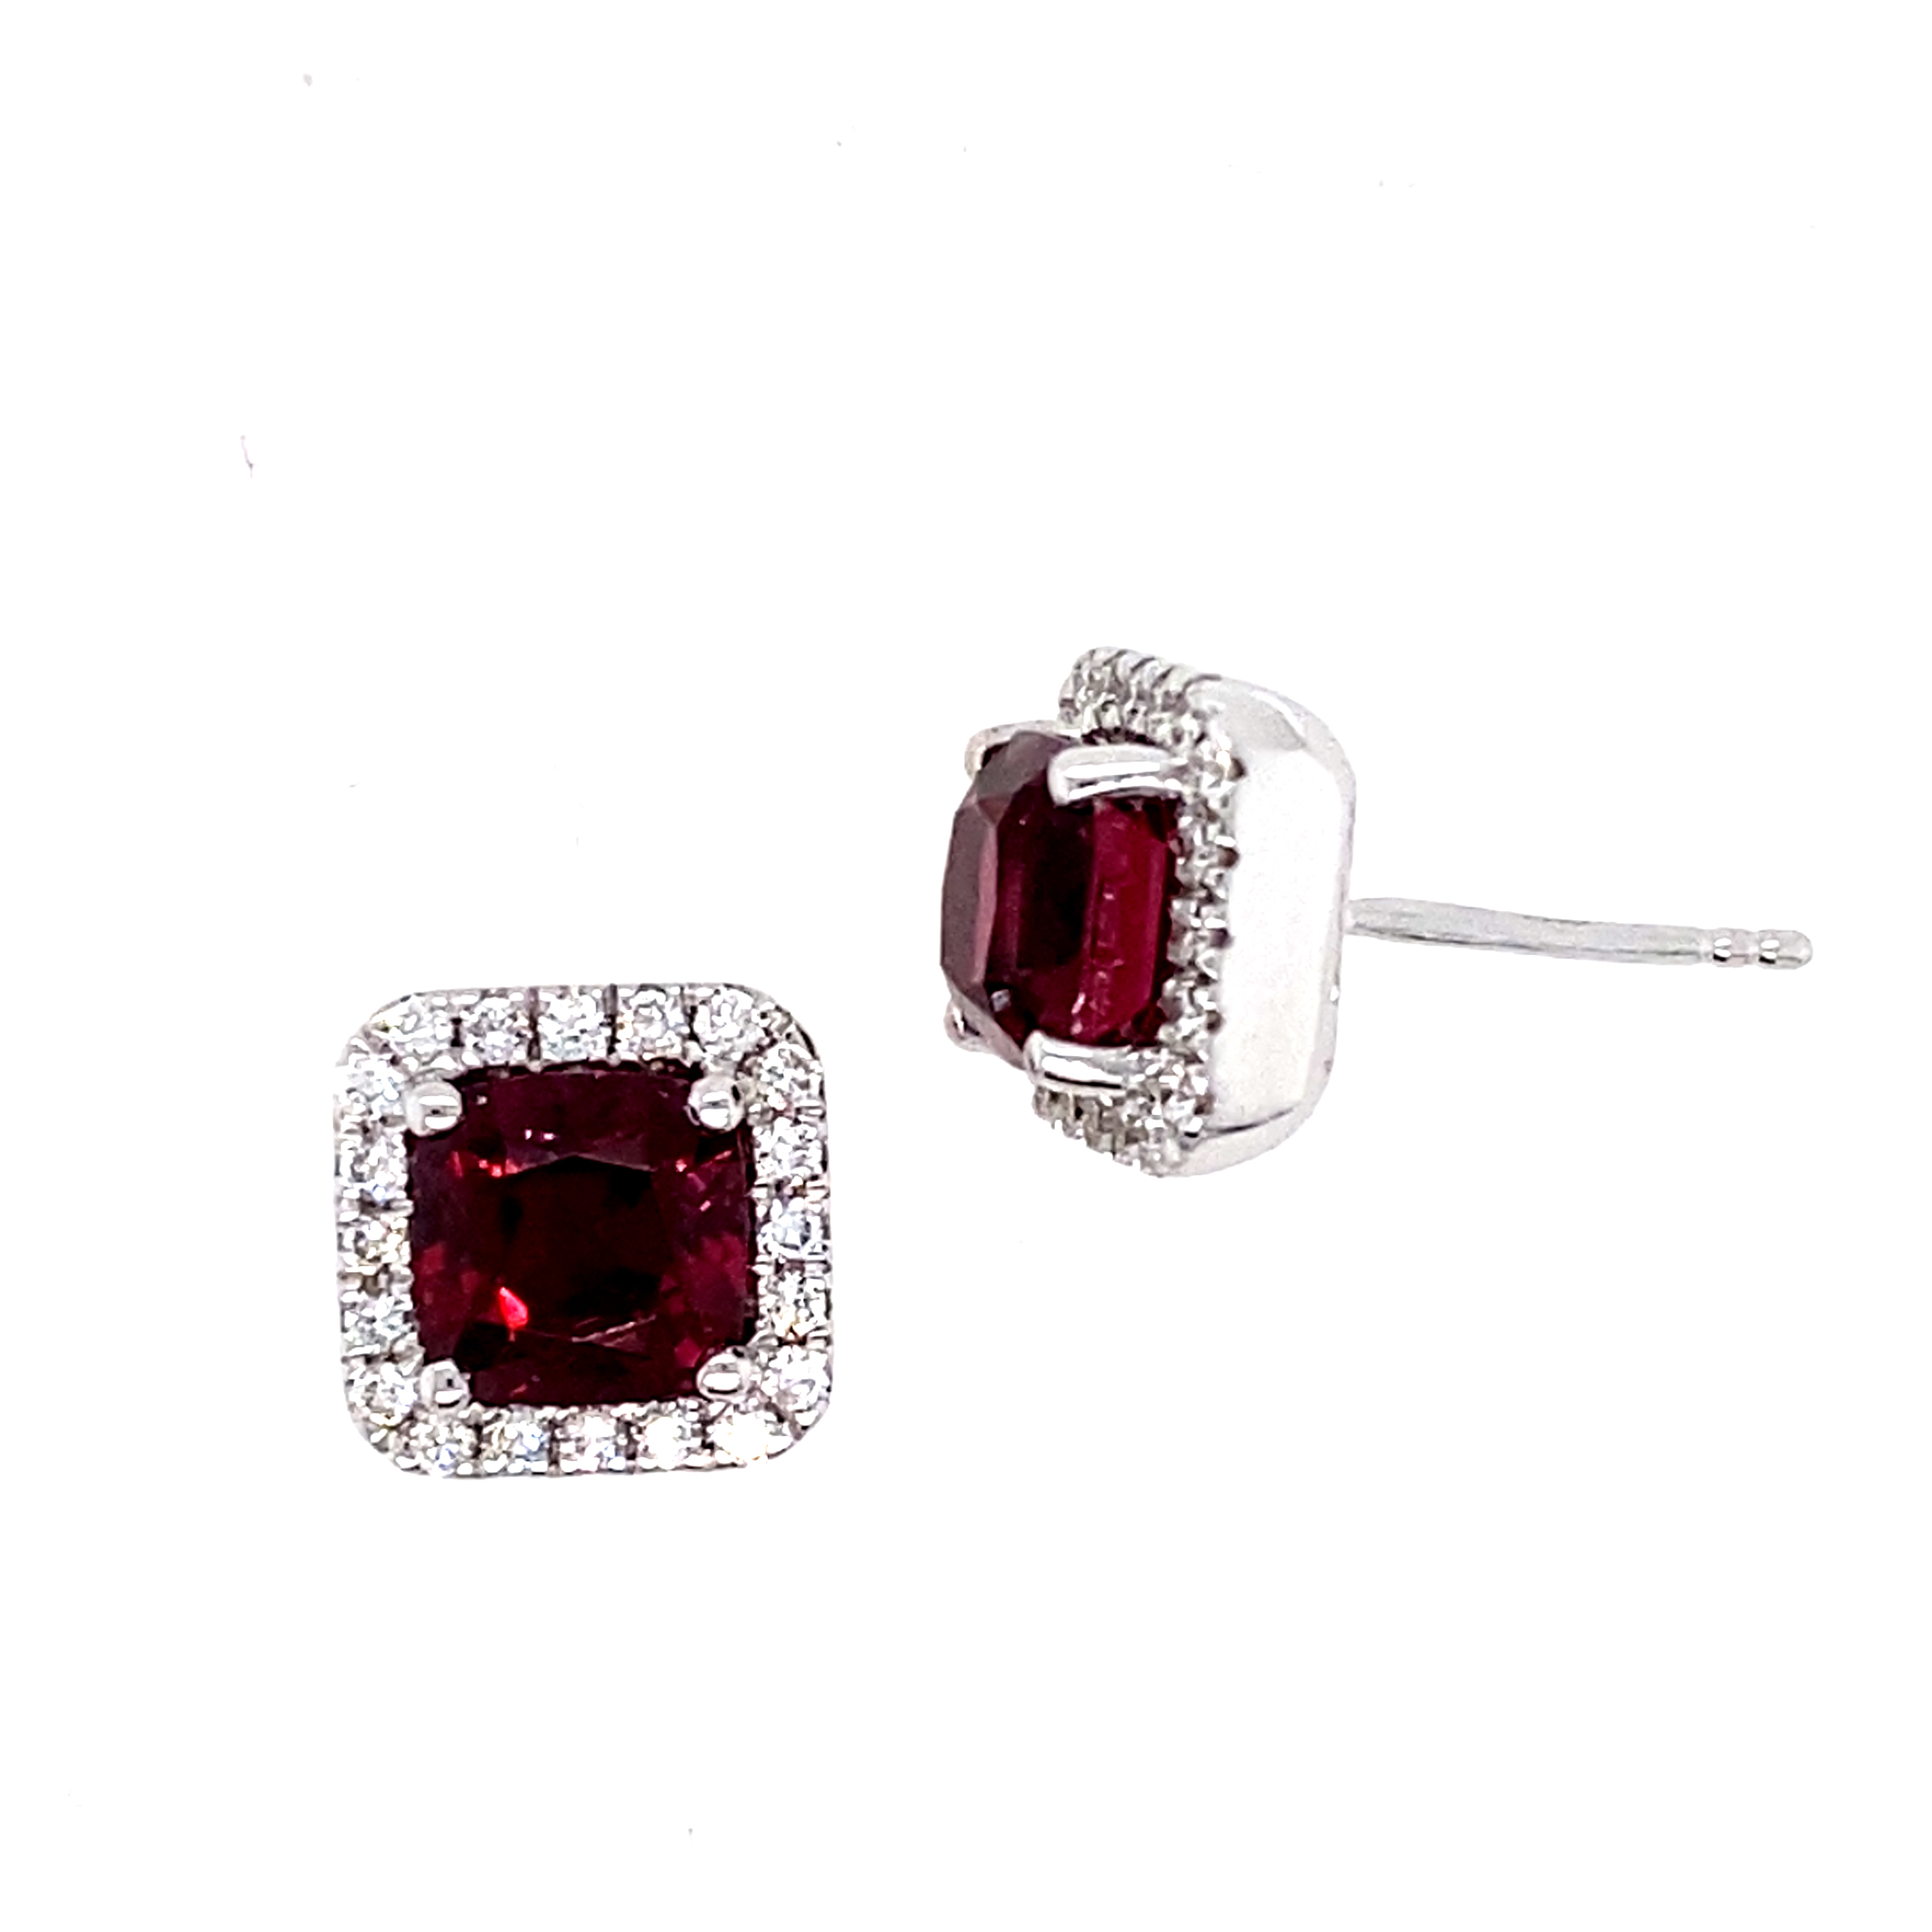 18 Carat White Gold Rhodolite Garnet and Diamond Studs